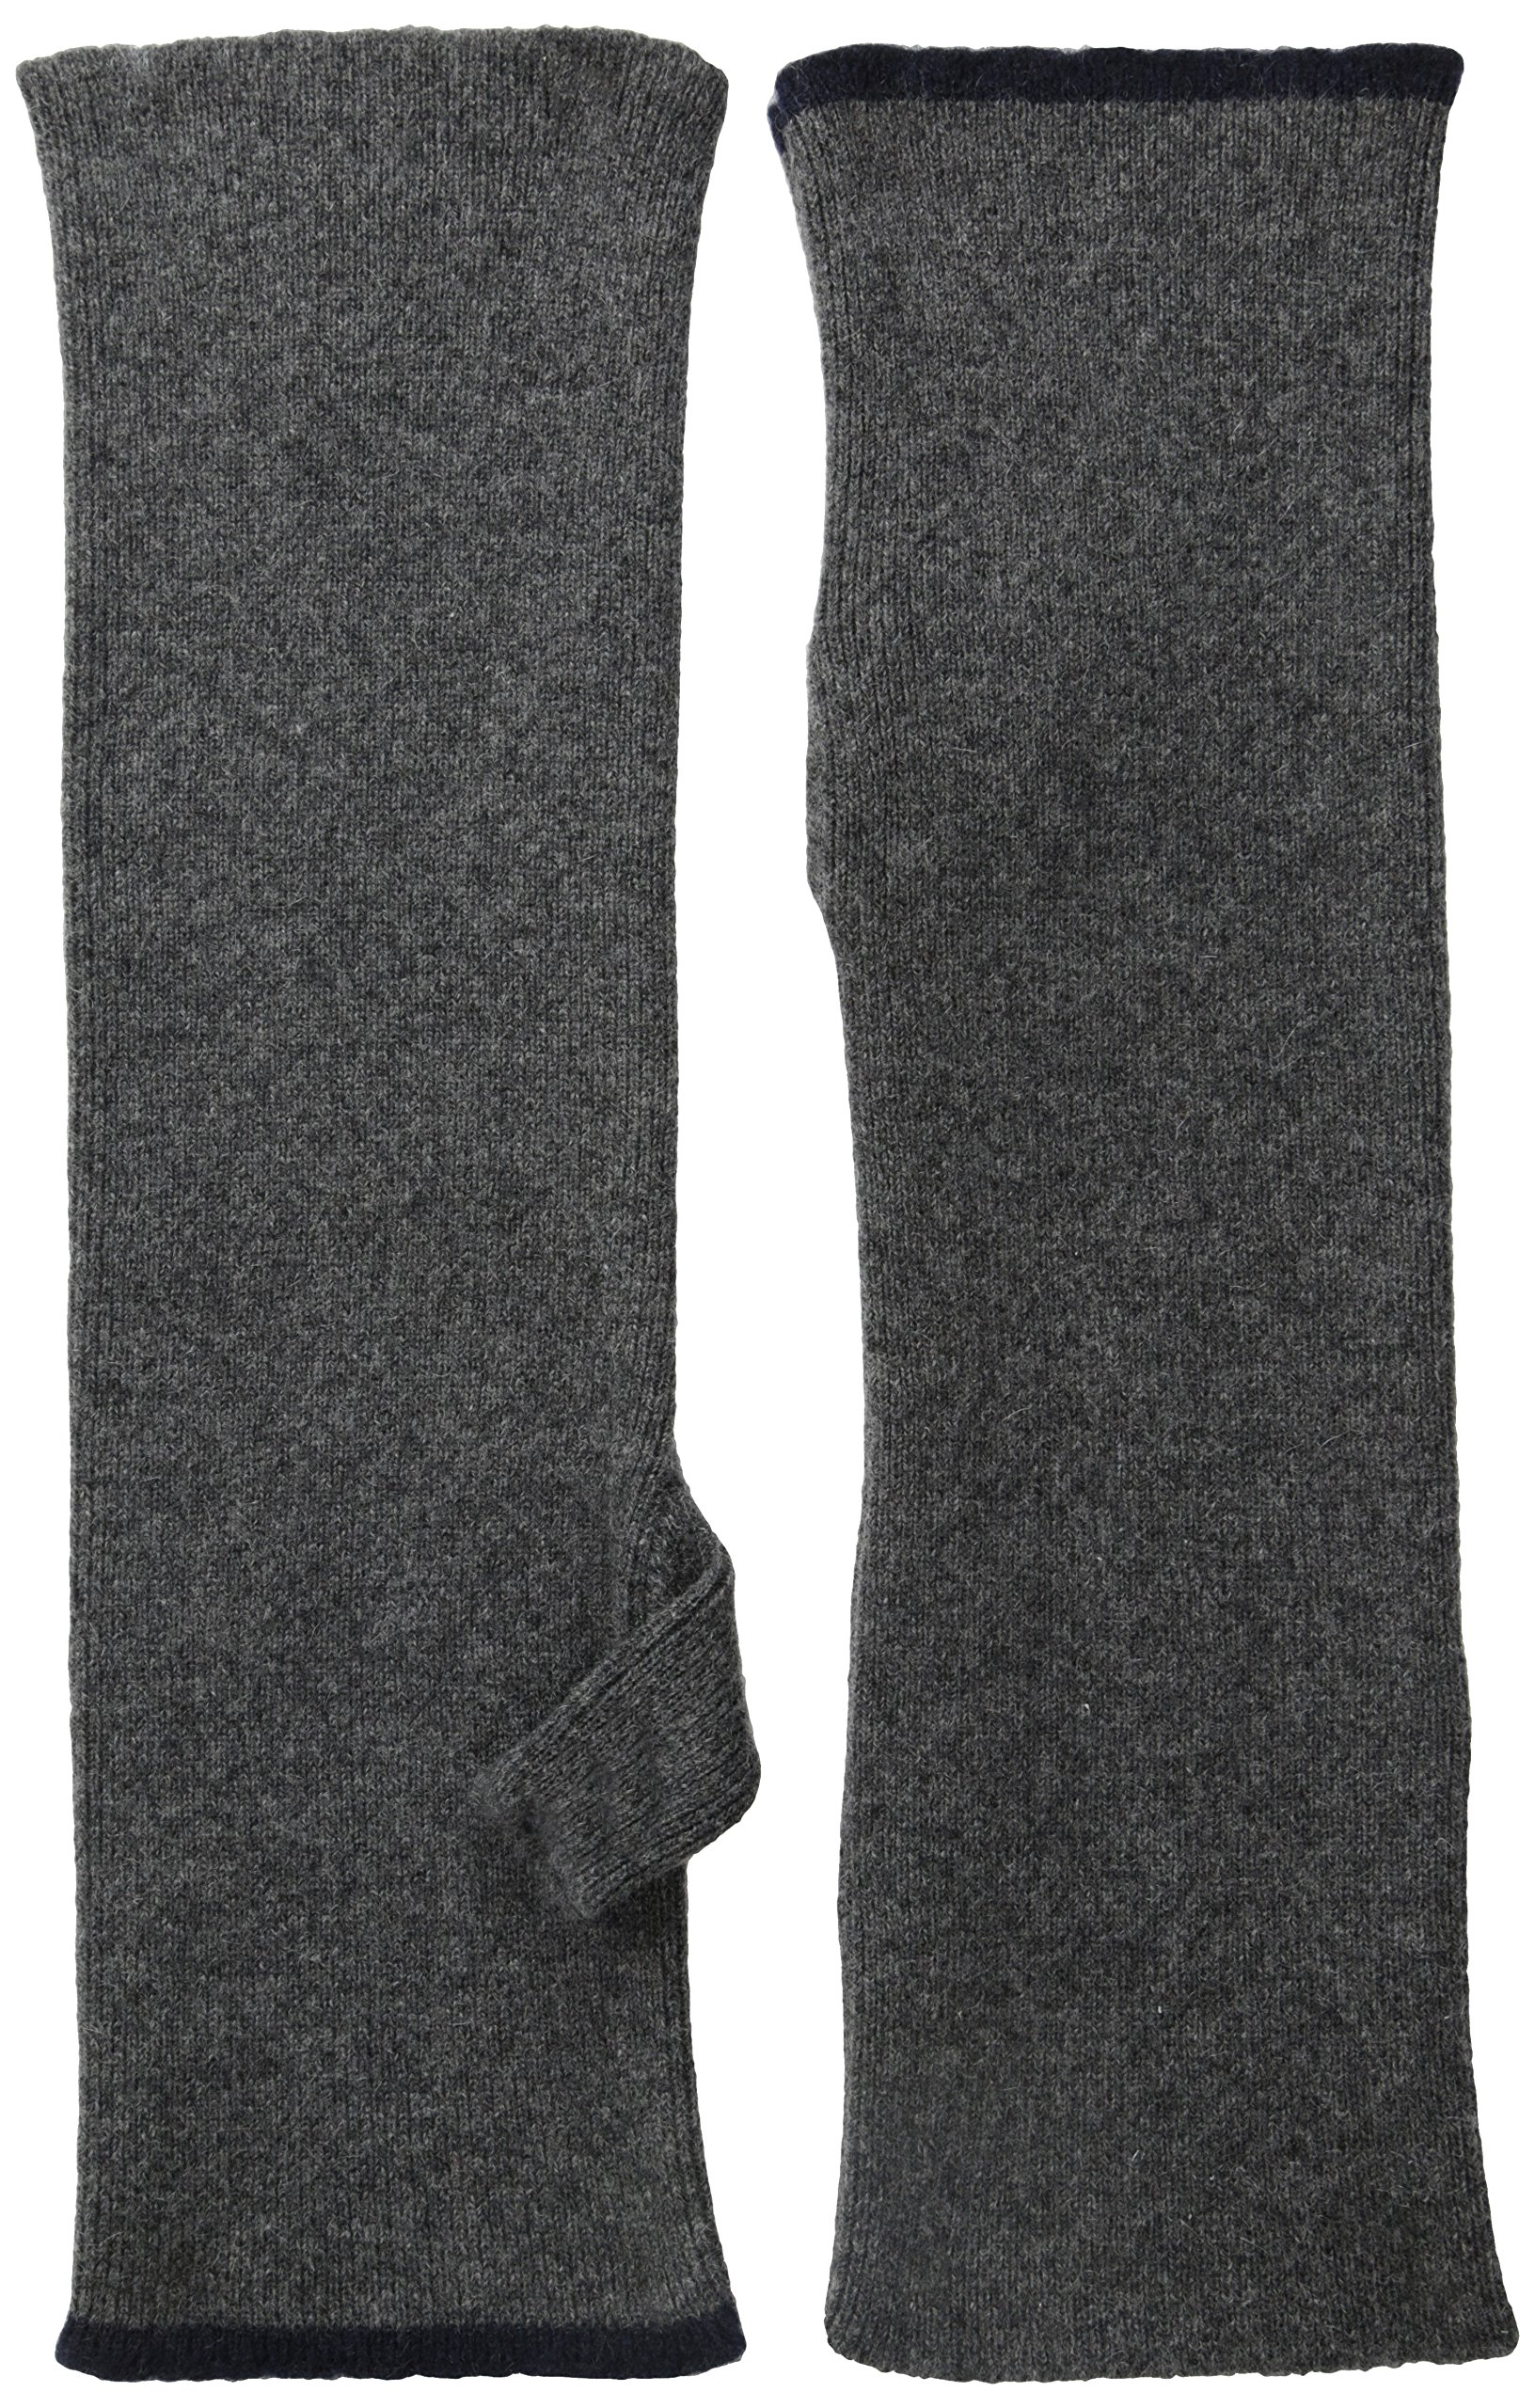 Marc Jacobs Men's Washed Cashmere Wrist Warmer with Contrast Stripe, Charcoal/Black, Large